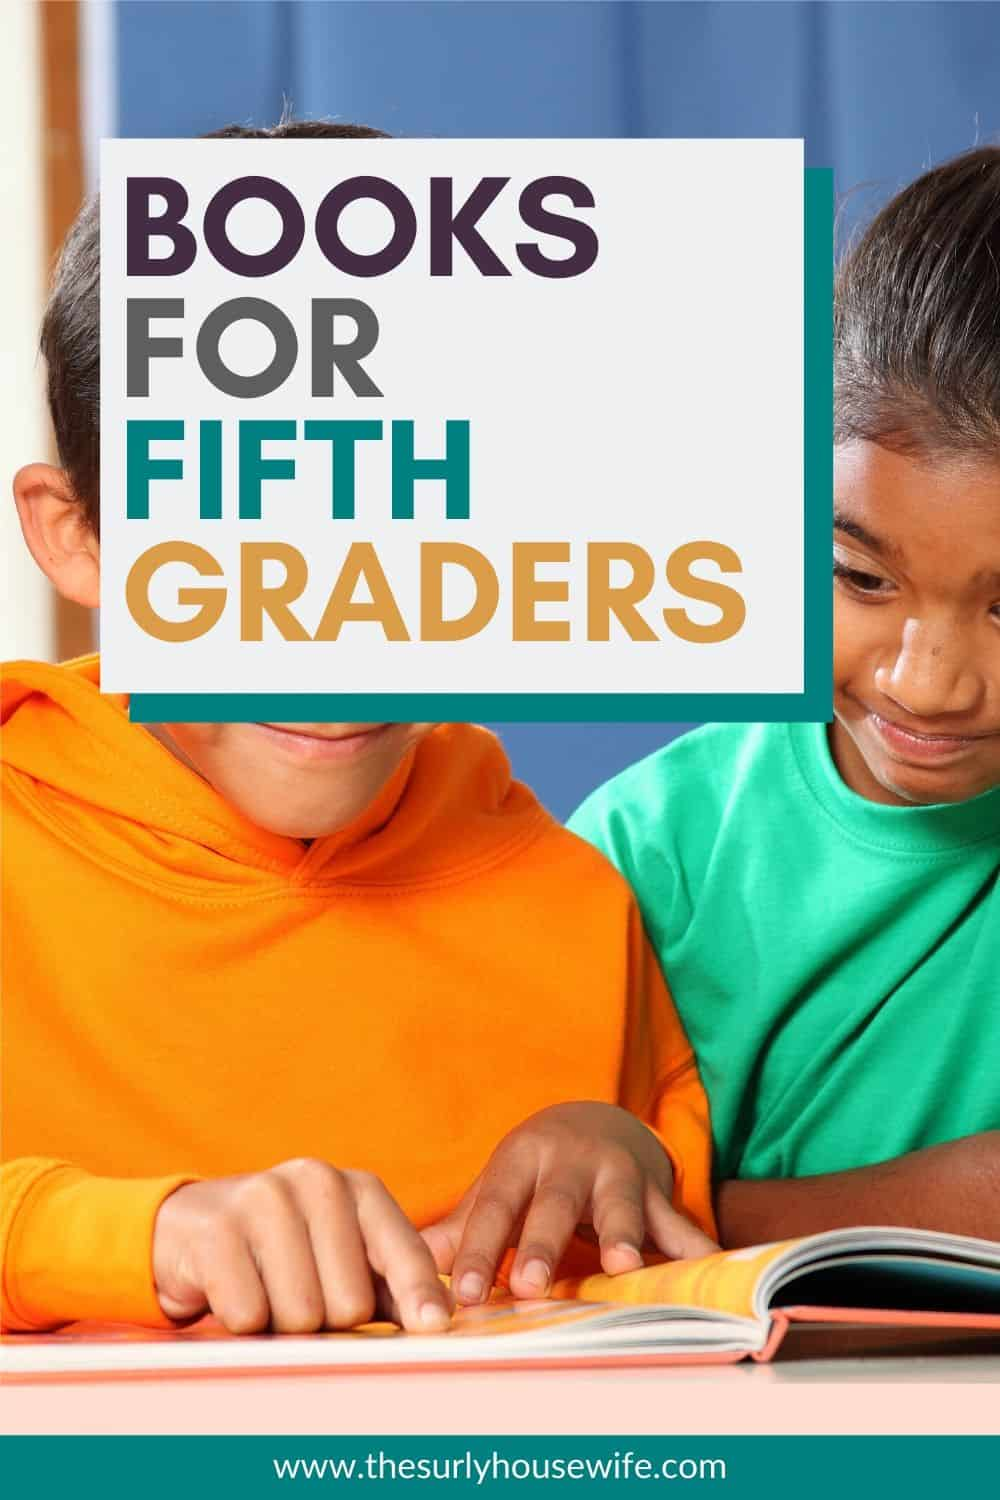 Searching for books for 5th graders? If you need fifth grade chapter book recommendations check out this post that has over 50 book suggestions! They are must-read books for 5th graders.